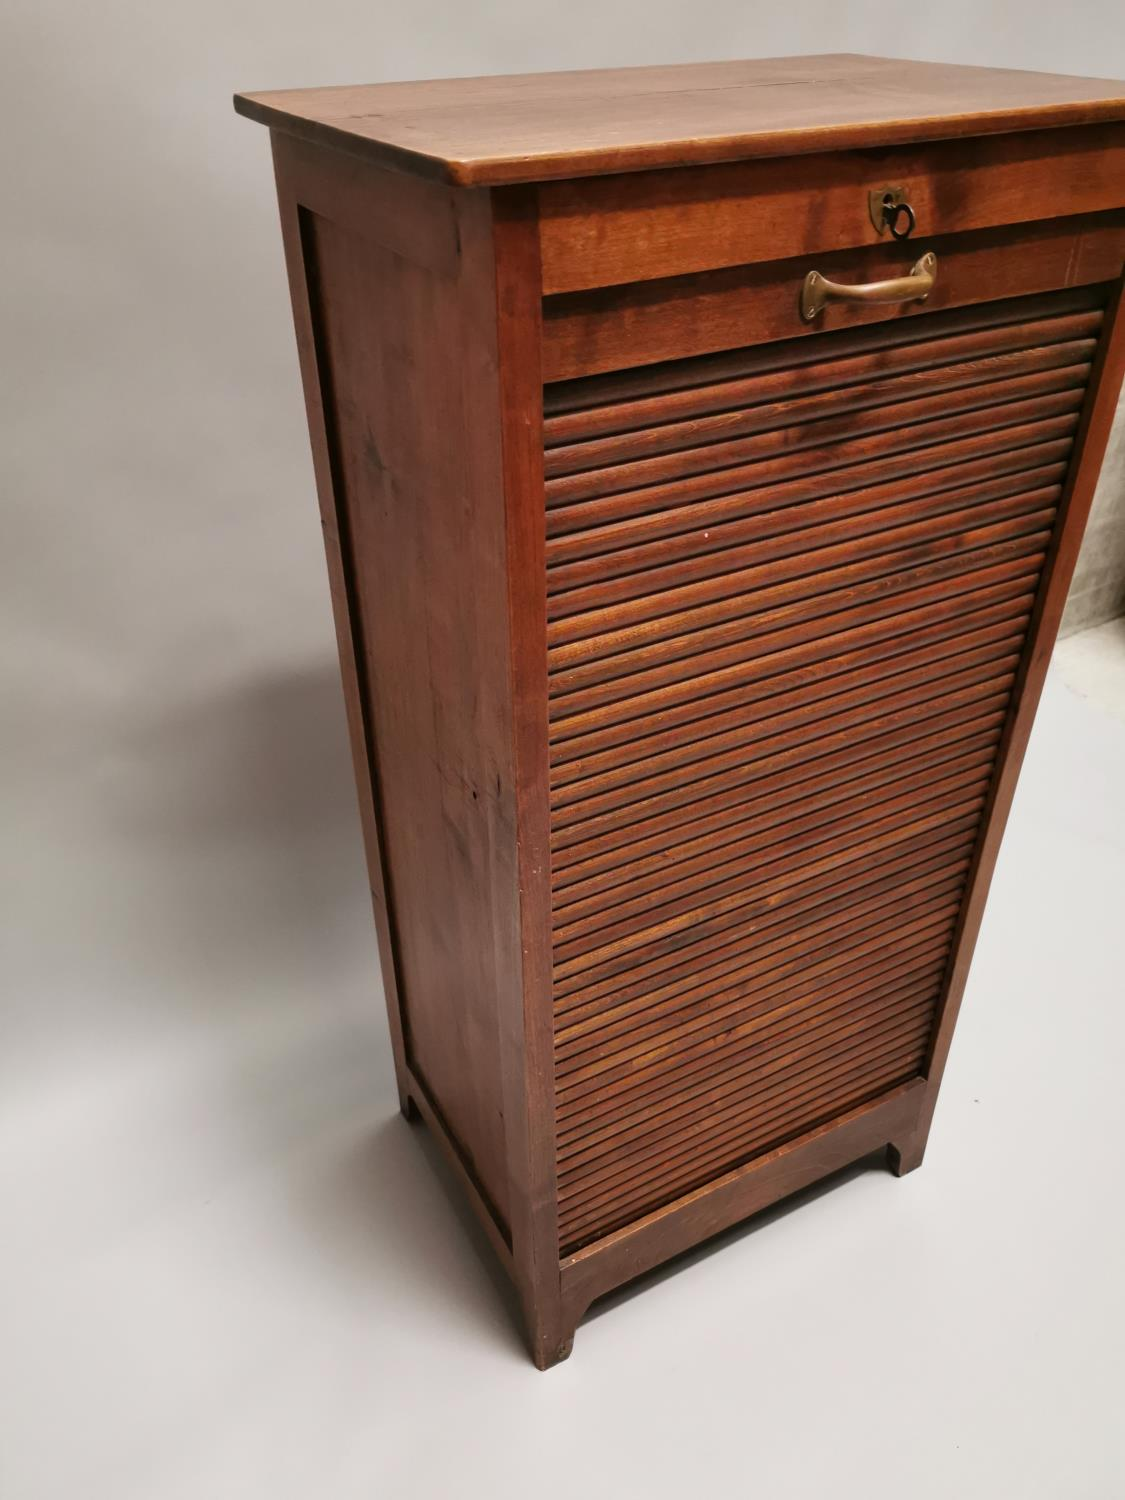 Early 20th. C. oak filing cabinet - Image 6 of 7